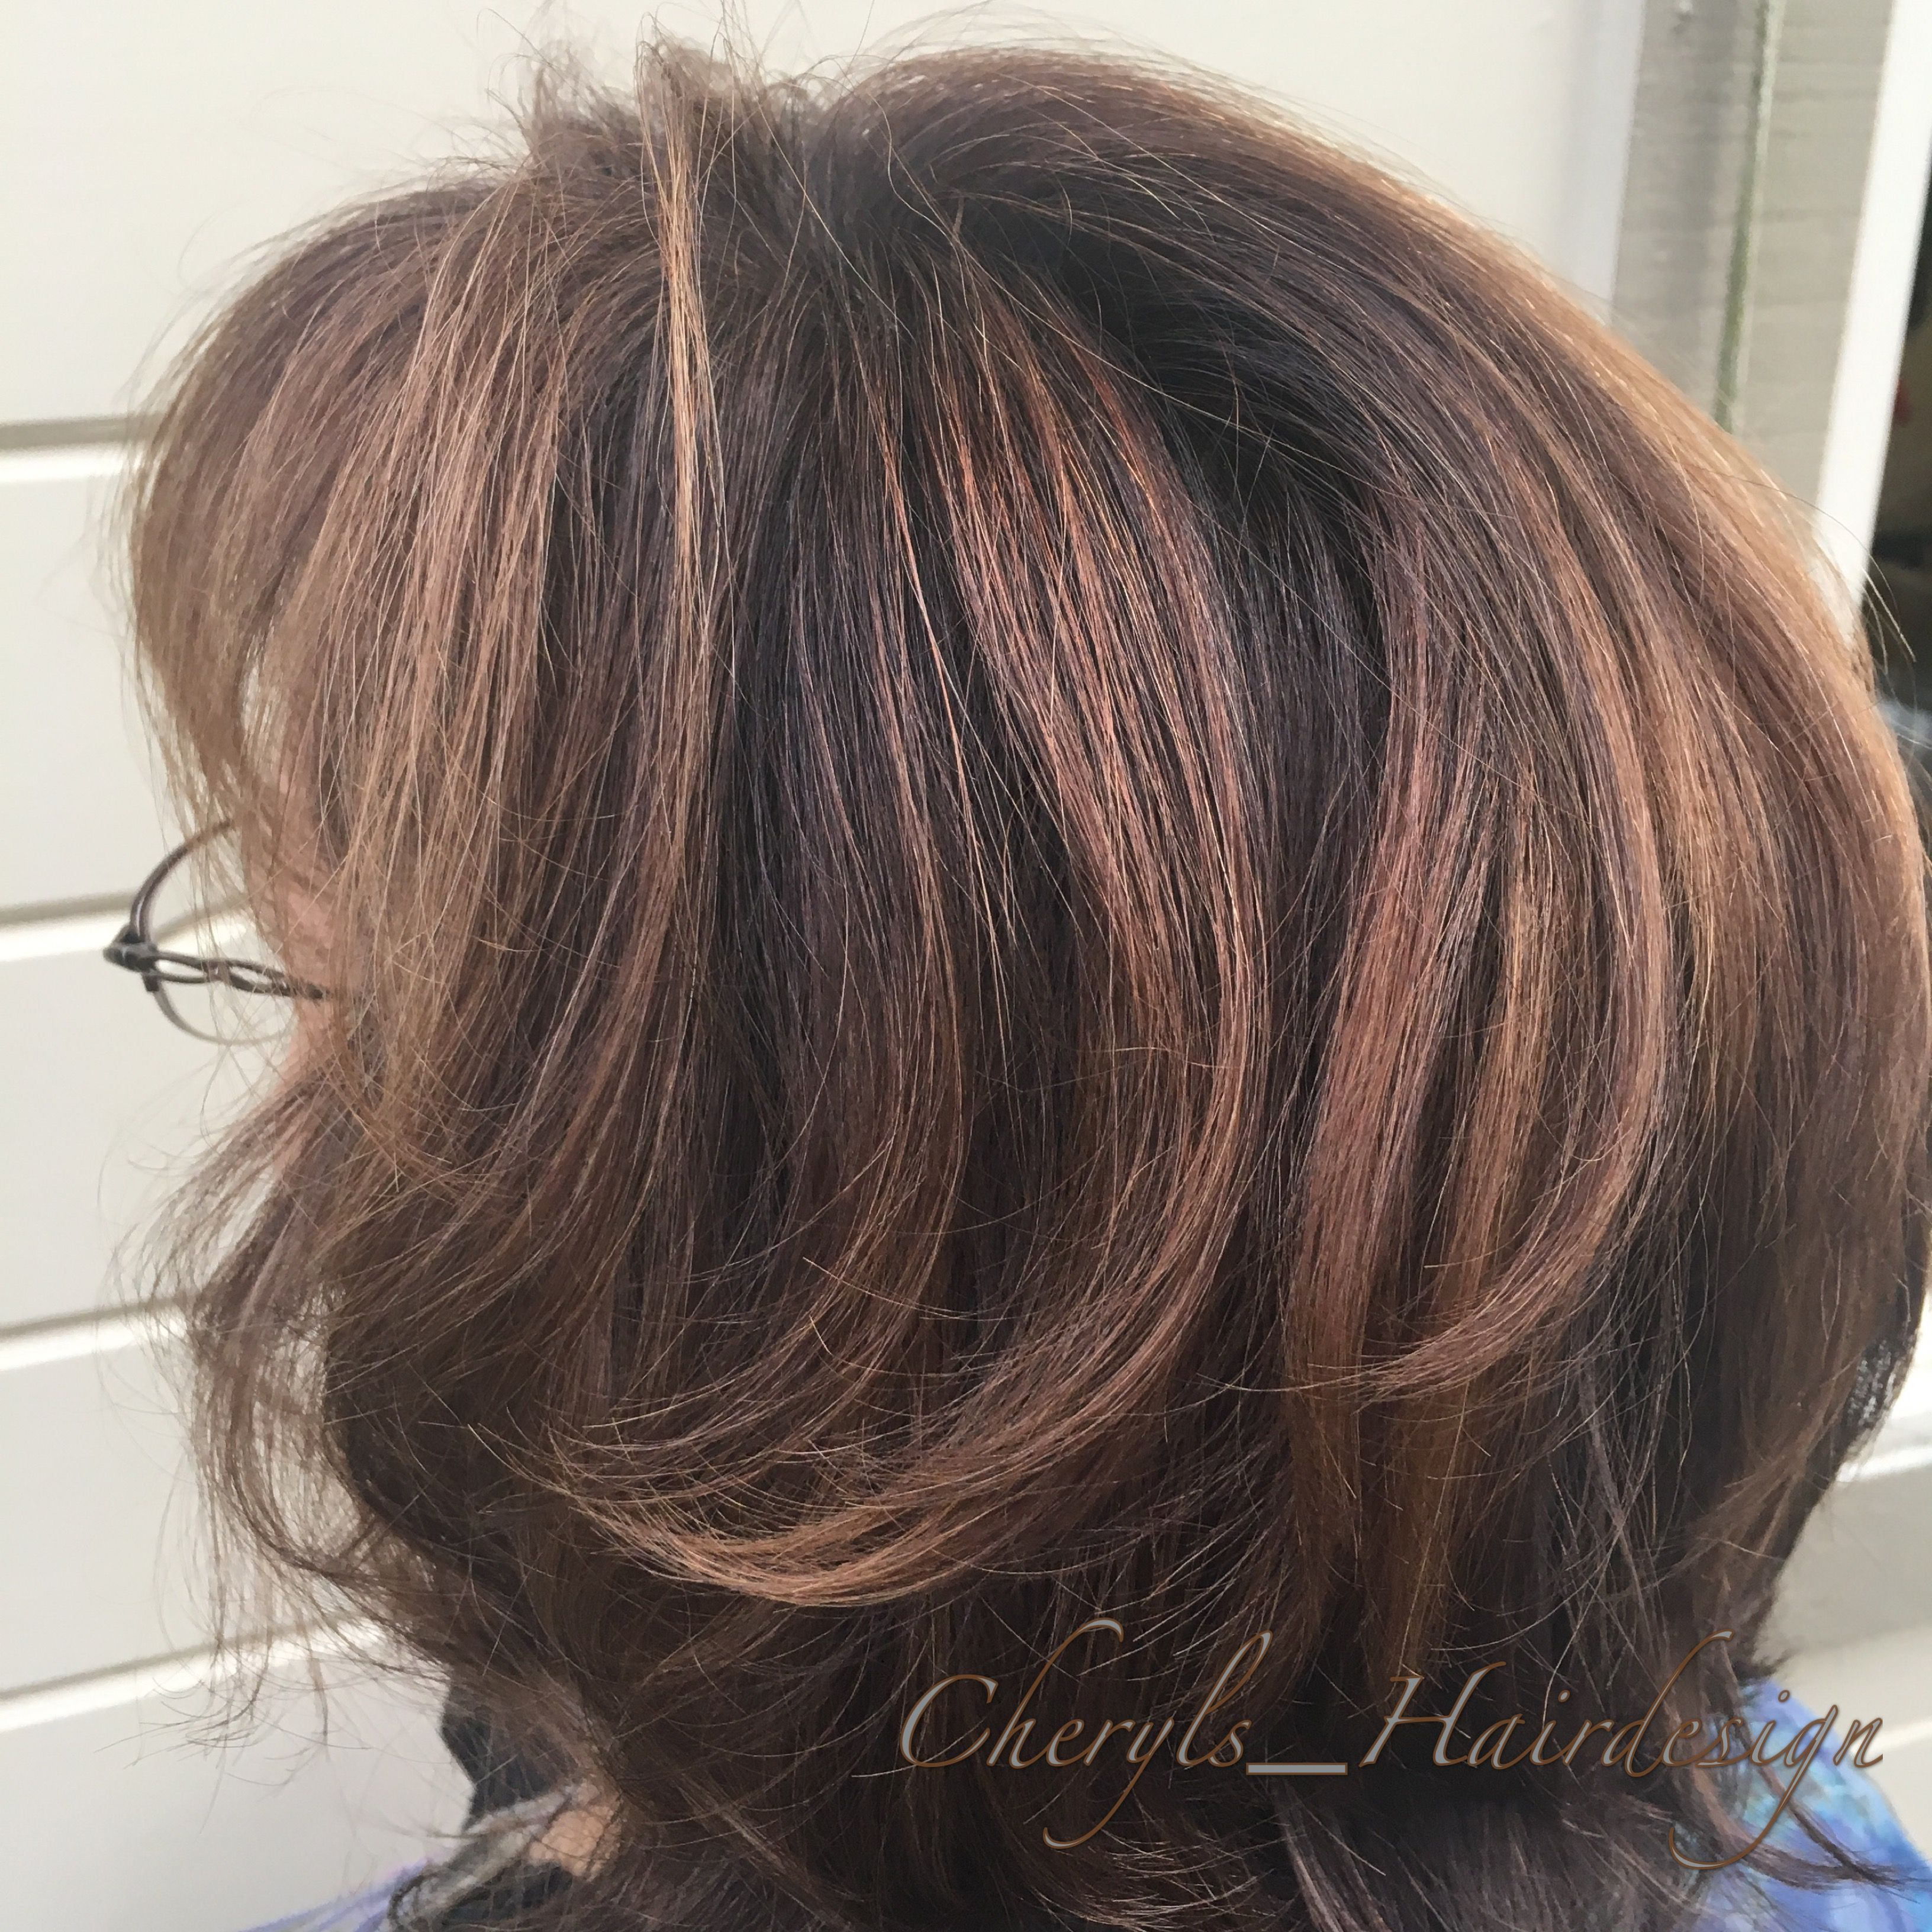 Soft Dimensional Hair Color Created With A Balyage Technique Stacked Bob Haircut With Lots Of Volume Cabelo